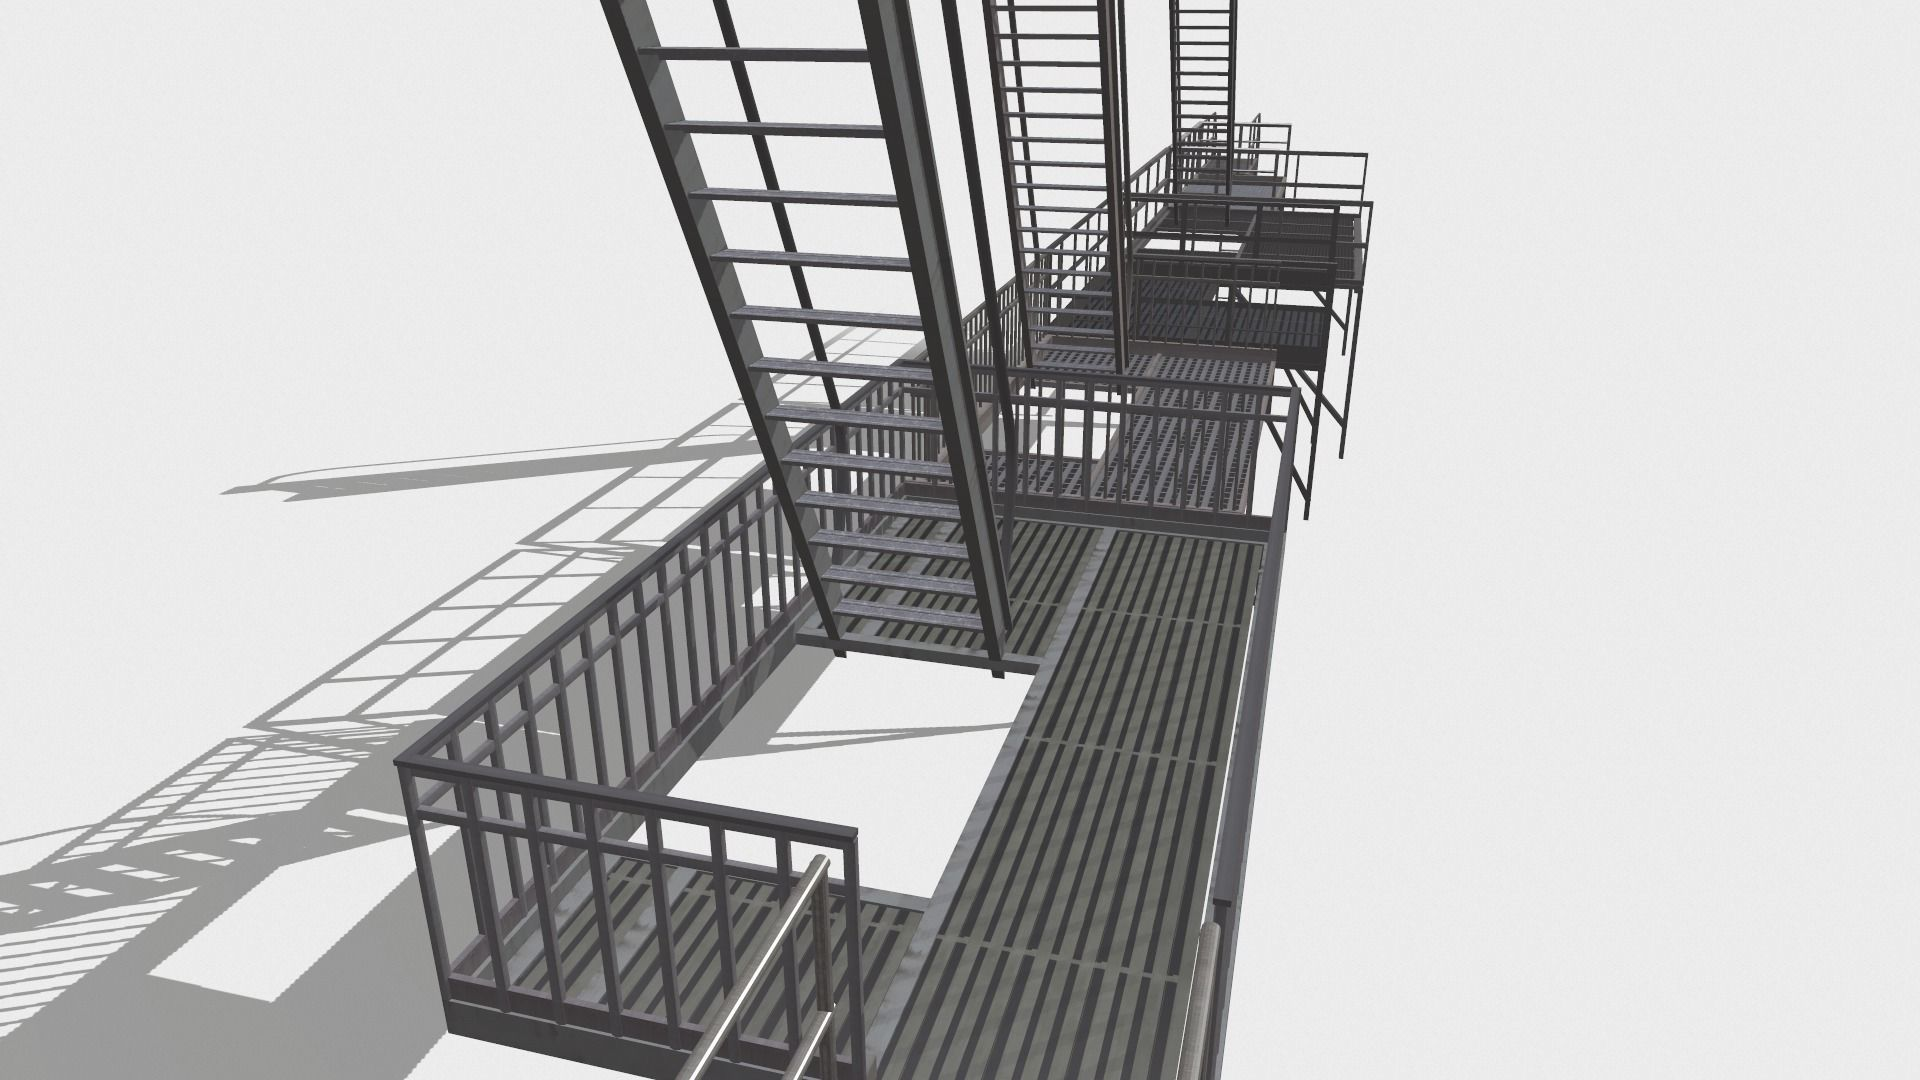 Fire ladders and platforms